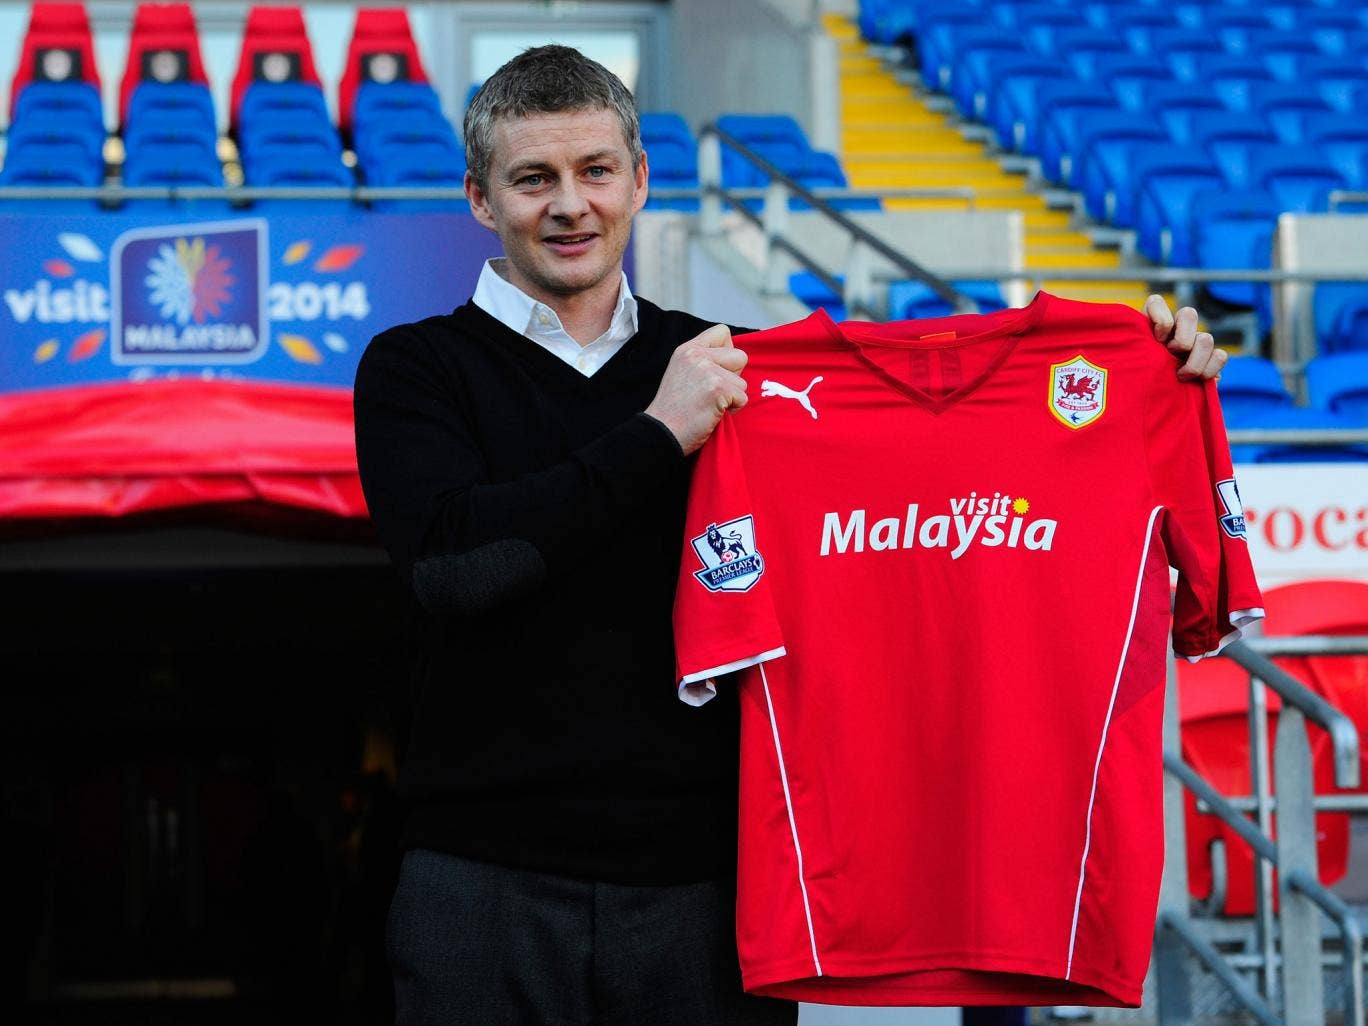 Ole Gunnar Solskjaer is presented as the new manager of Cardiff City